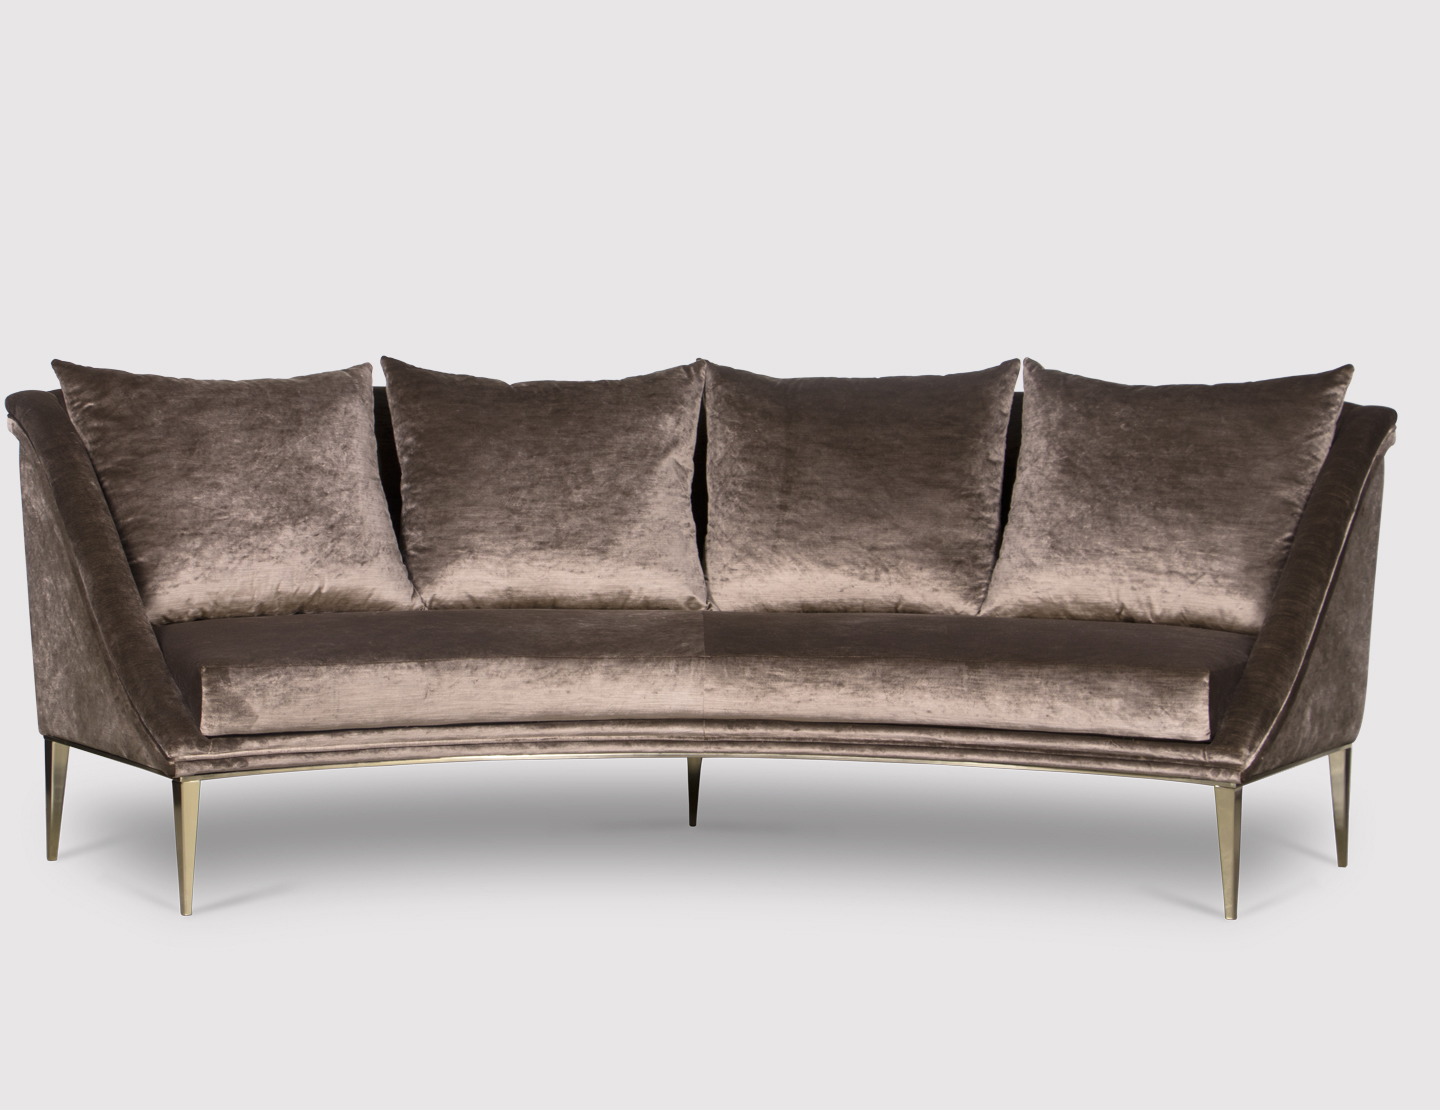 Geisha Sofa by KOKET